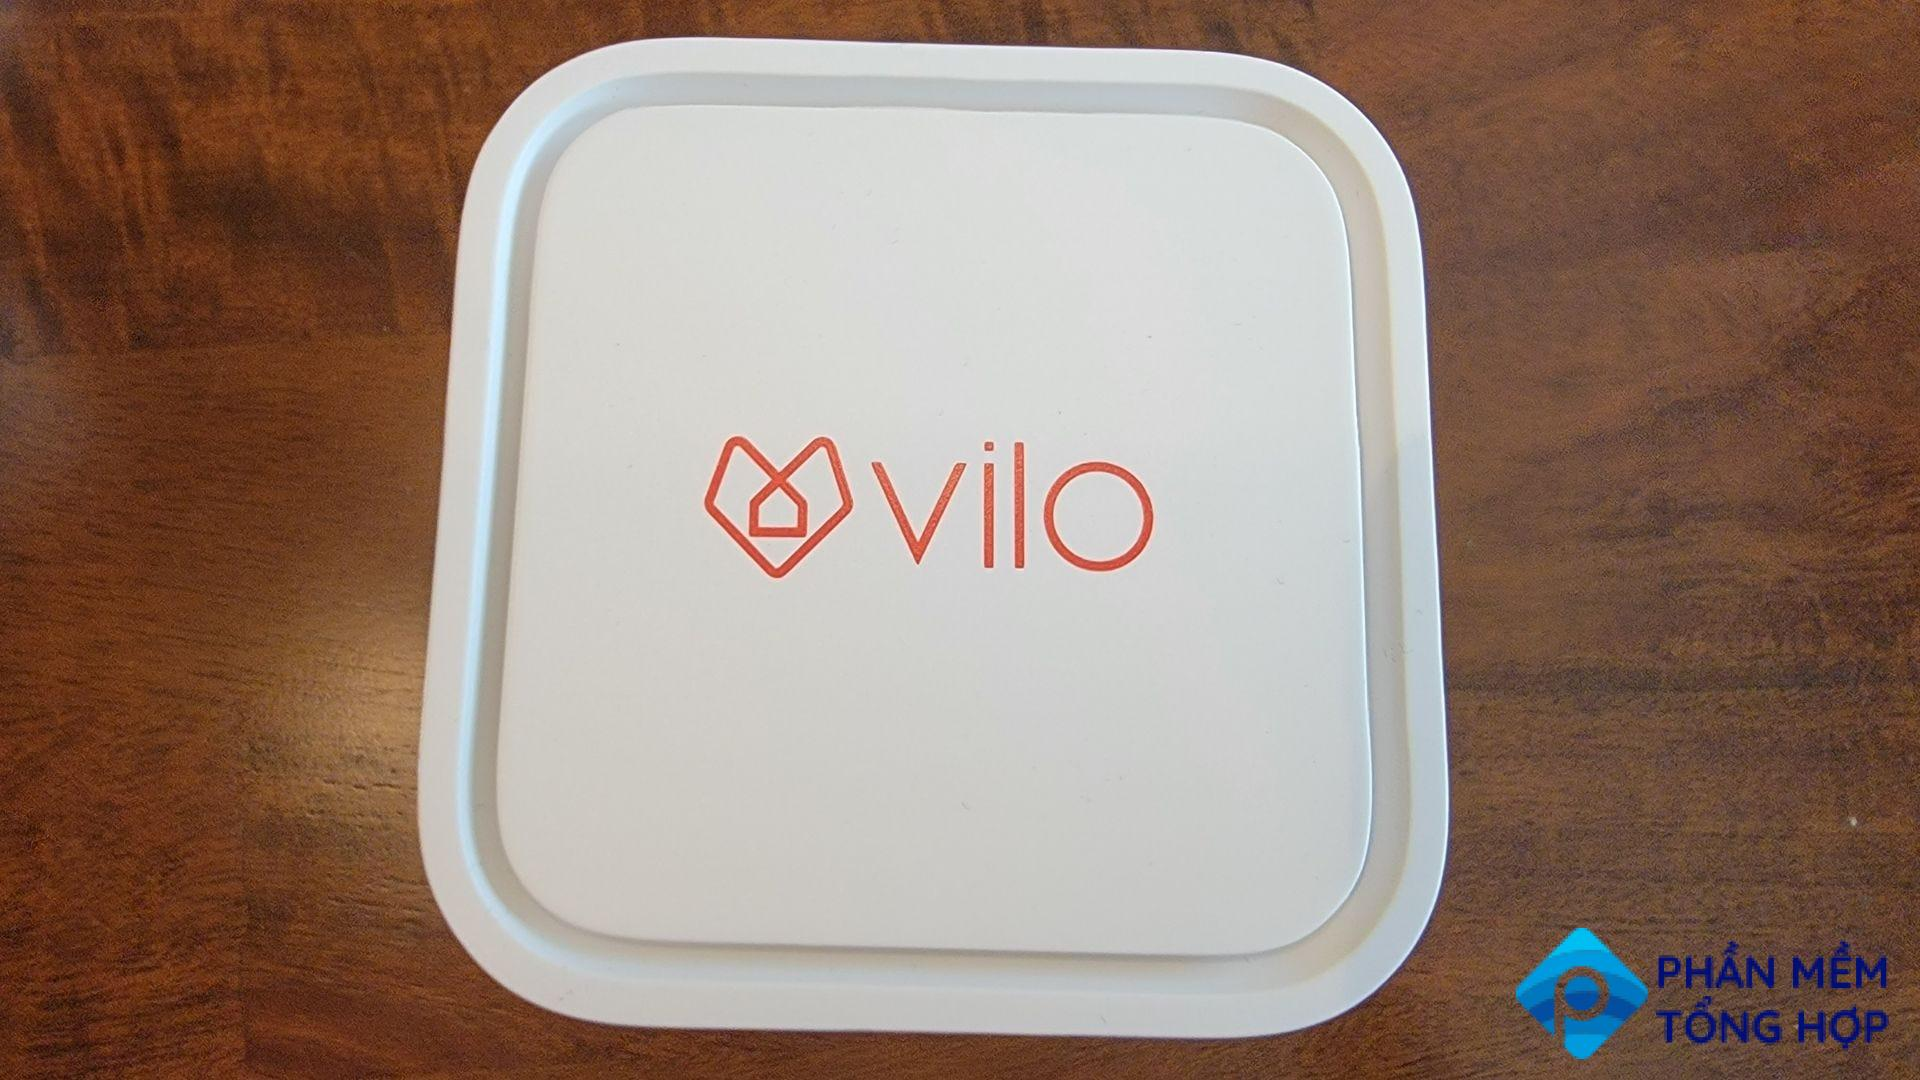 the top of a mesh wifi vilo unit showing off the logo